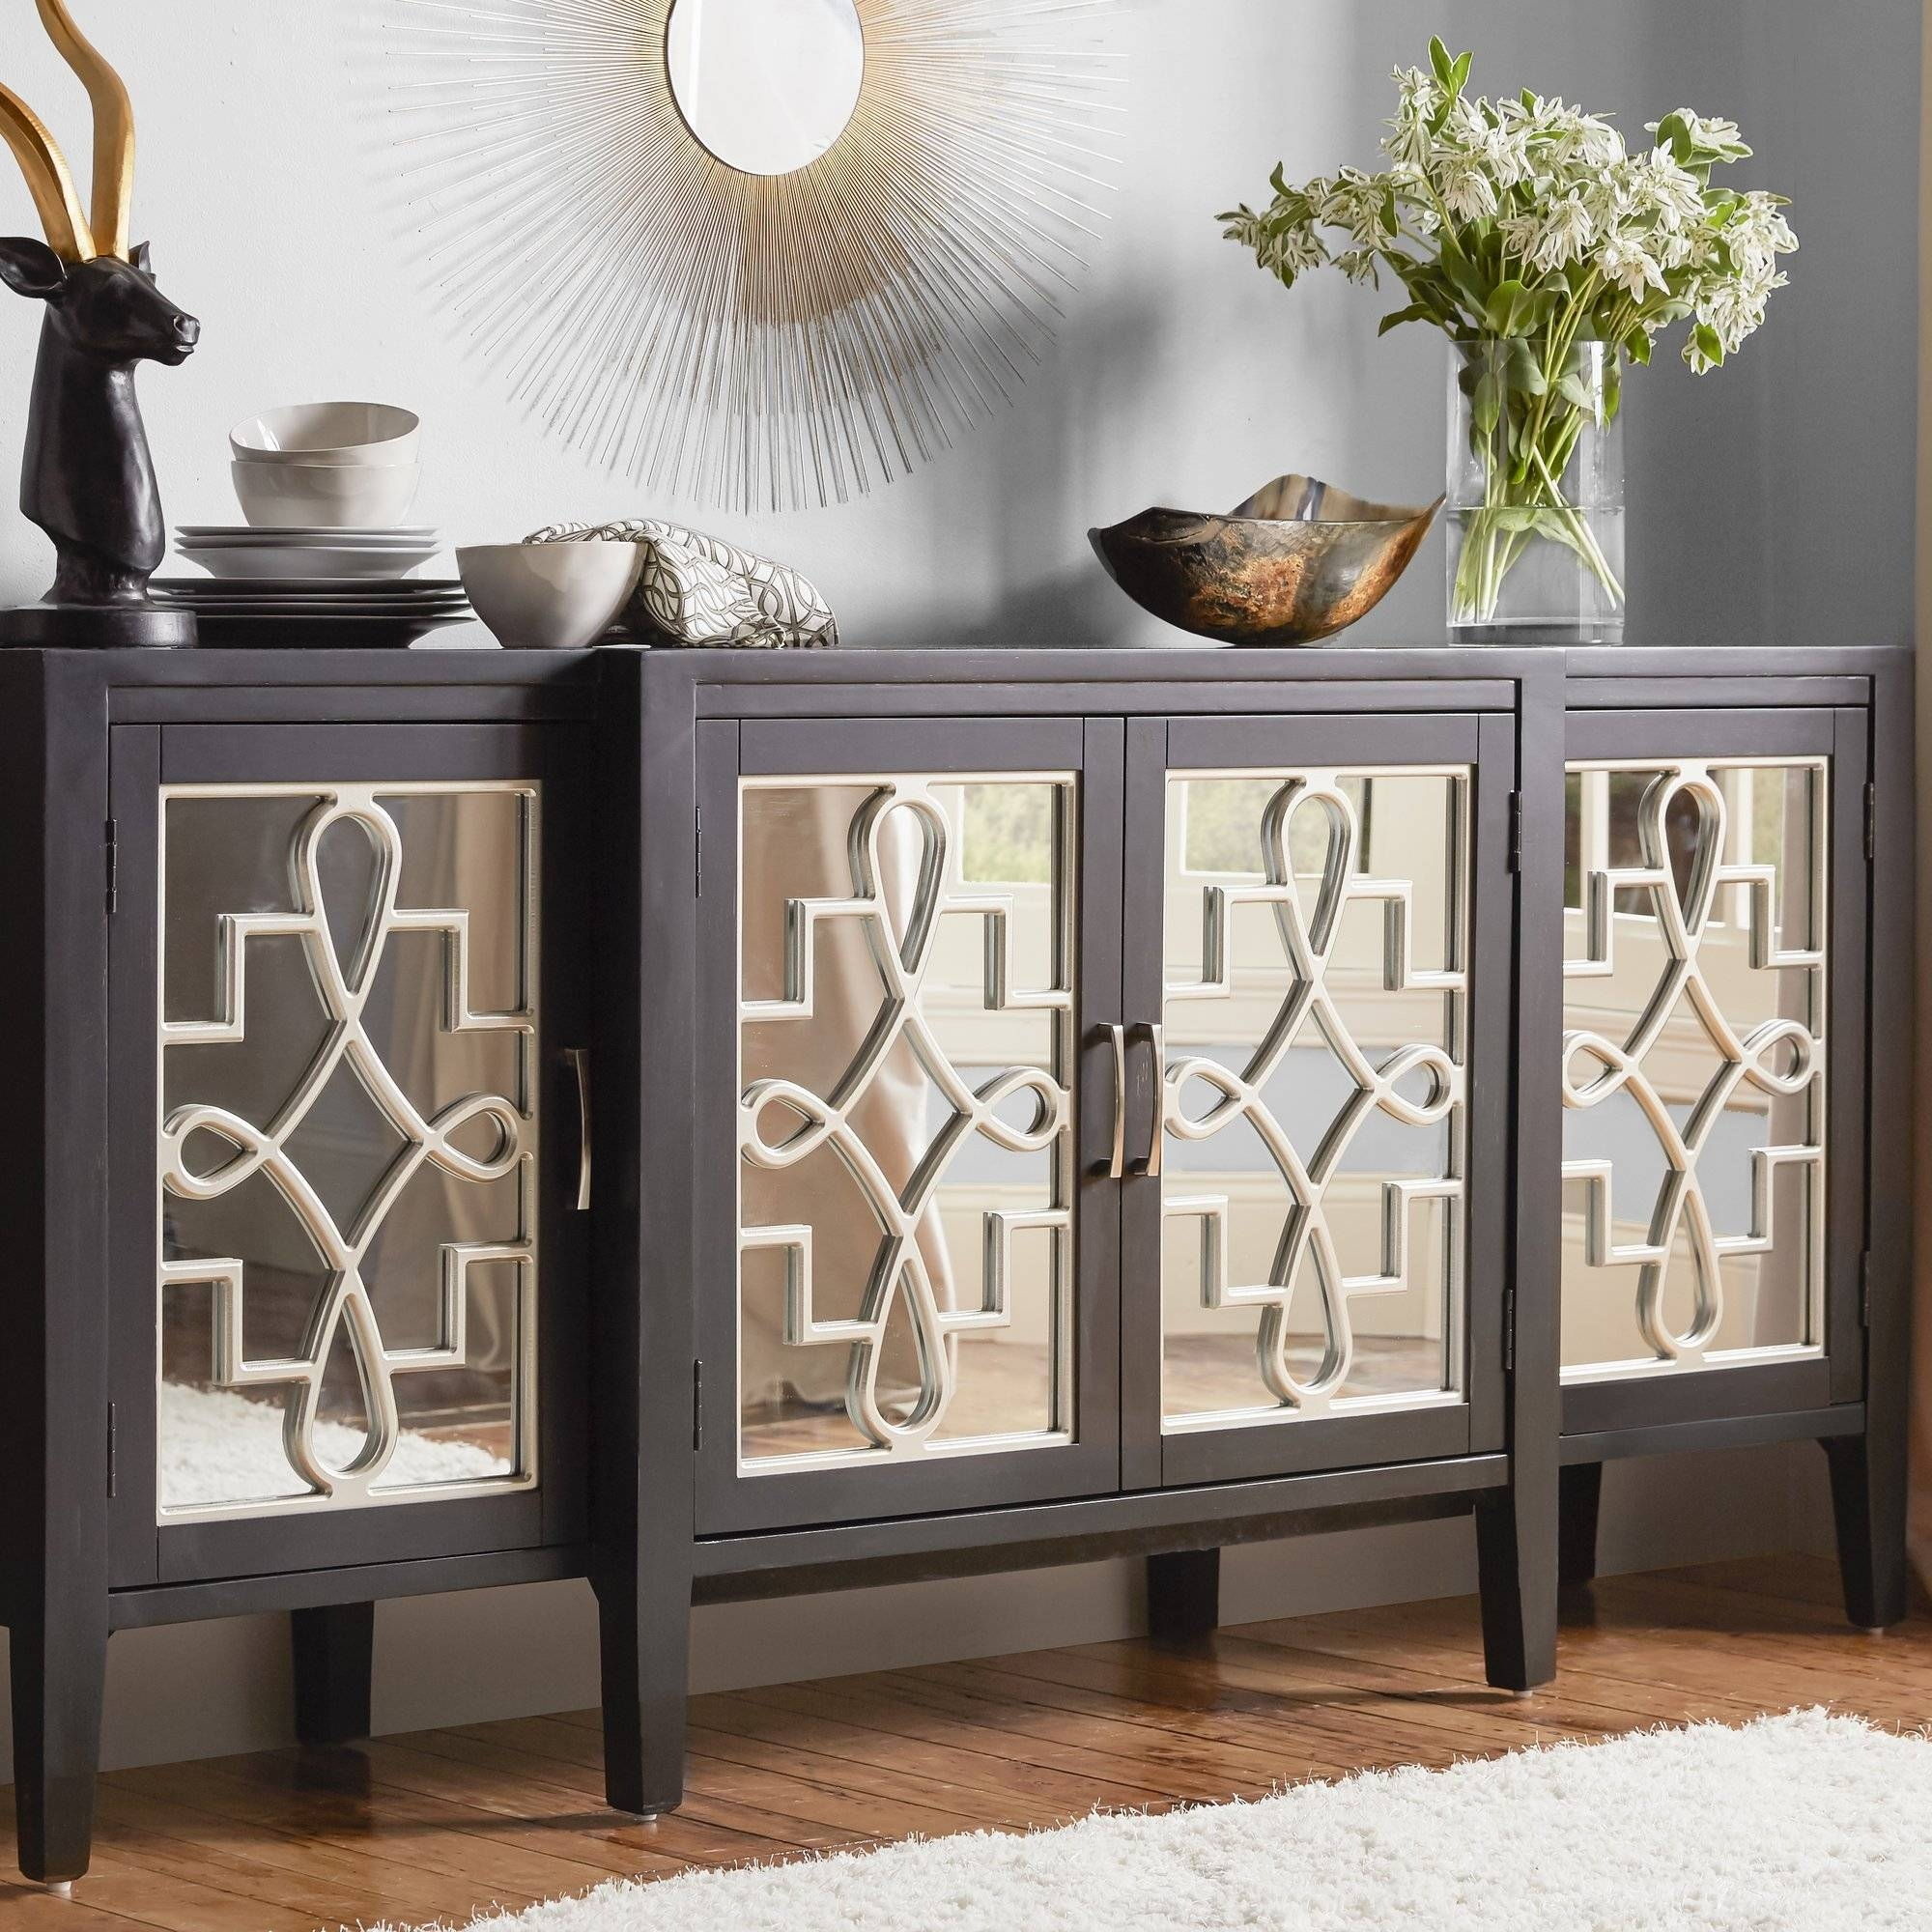 Furniture: Contemporary Version Of Distressed Sideboard Buffet Inside Small Mirrored Sideboards (View 6 of 30)